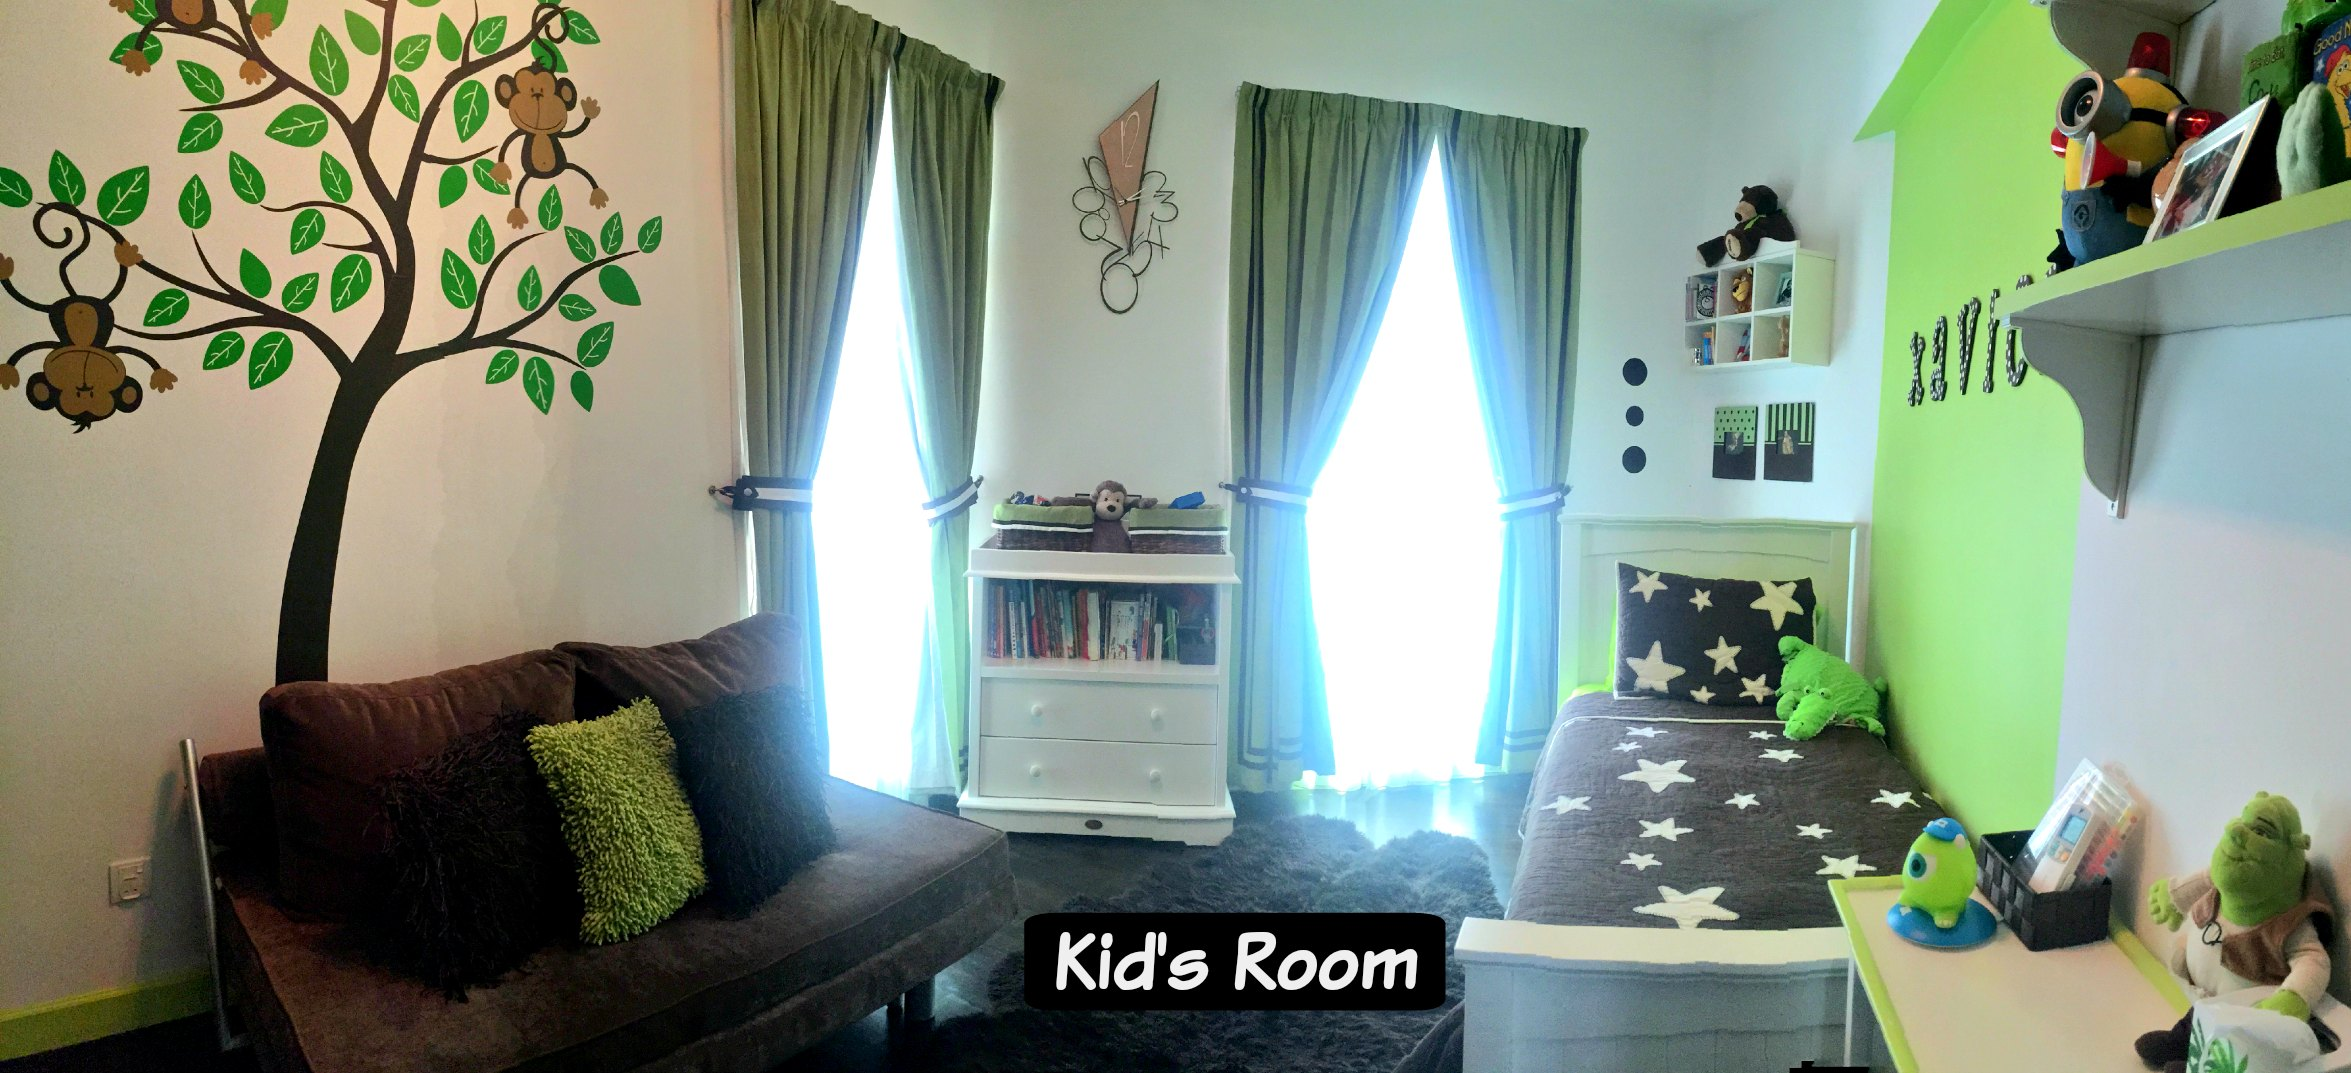 How To Convert A Baby Room Into A Toddler Room